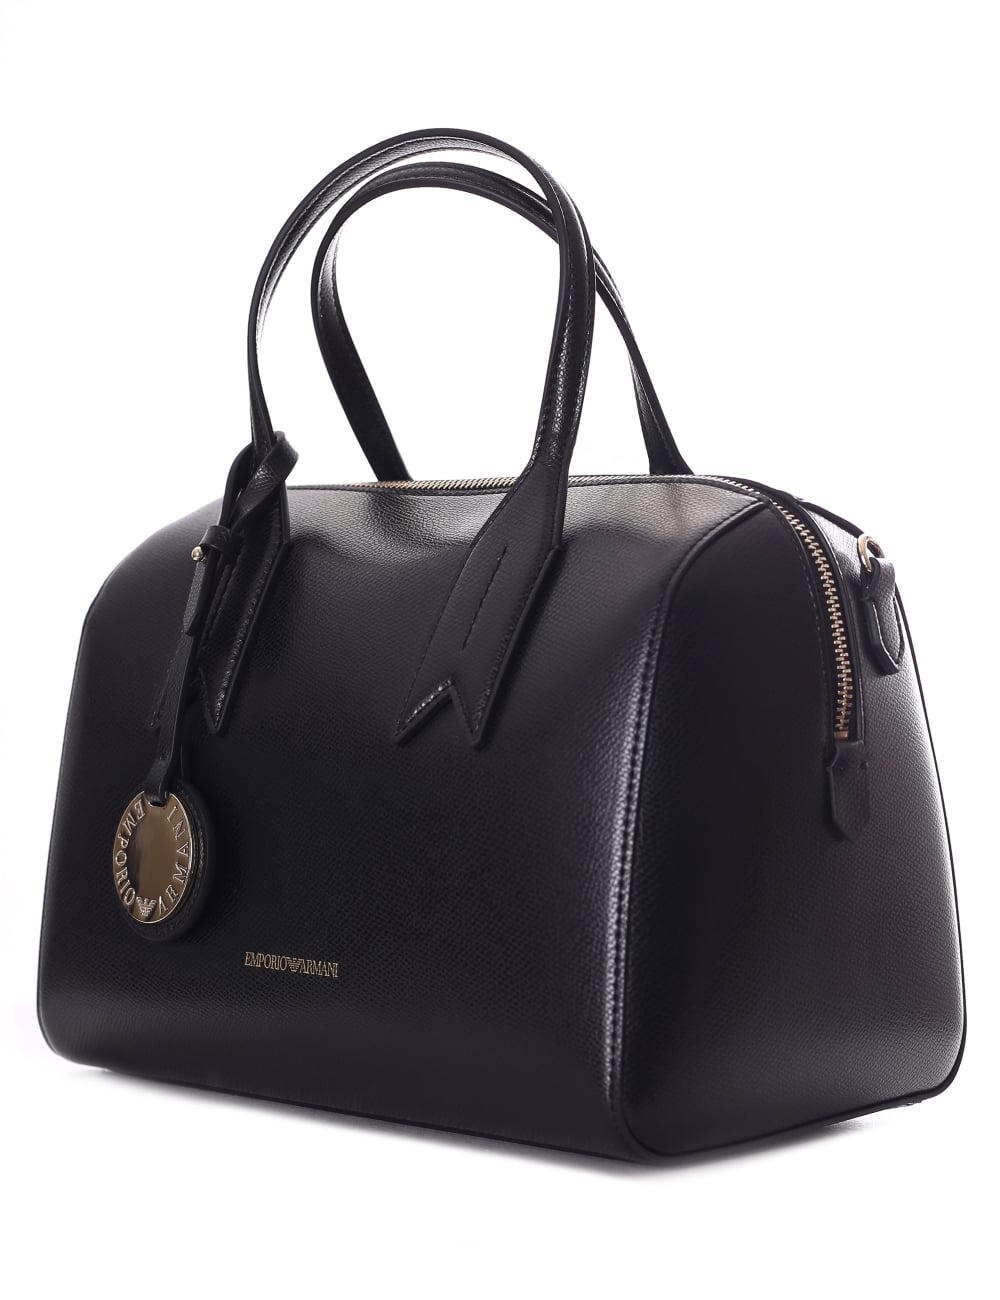 ... Bauletto Womens Bowling Bag best cheap f05a3 c28d4  Metal ... be8a7282565e9